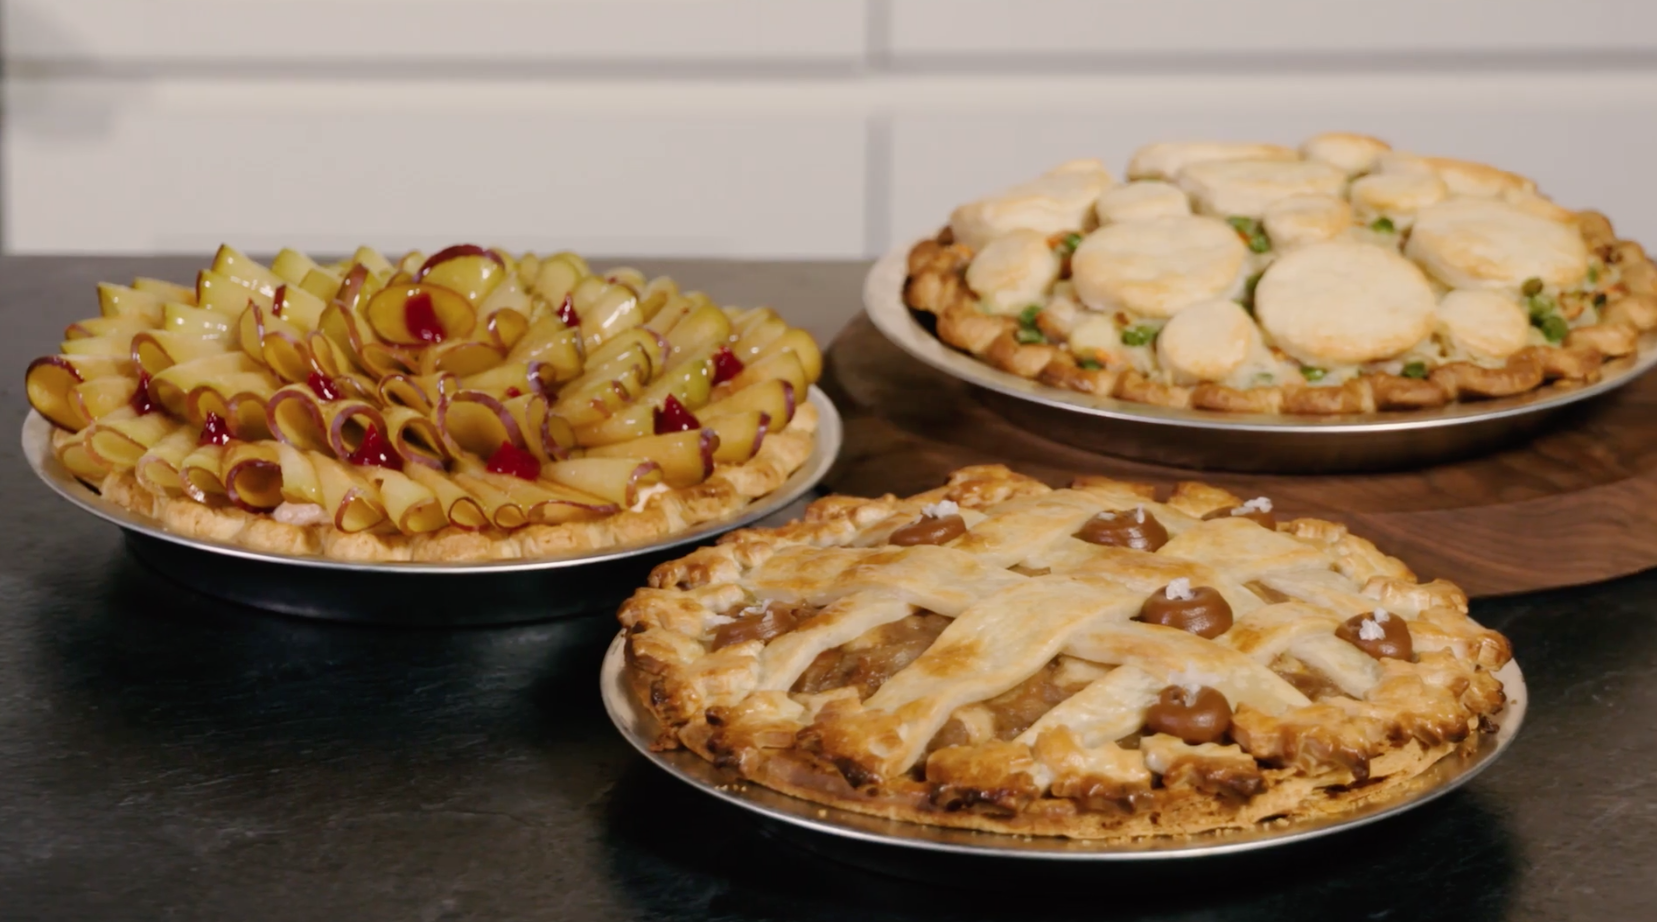 Three Pies with Dominique Ansel